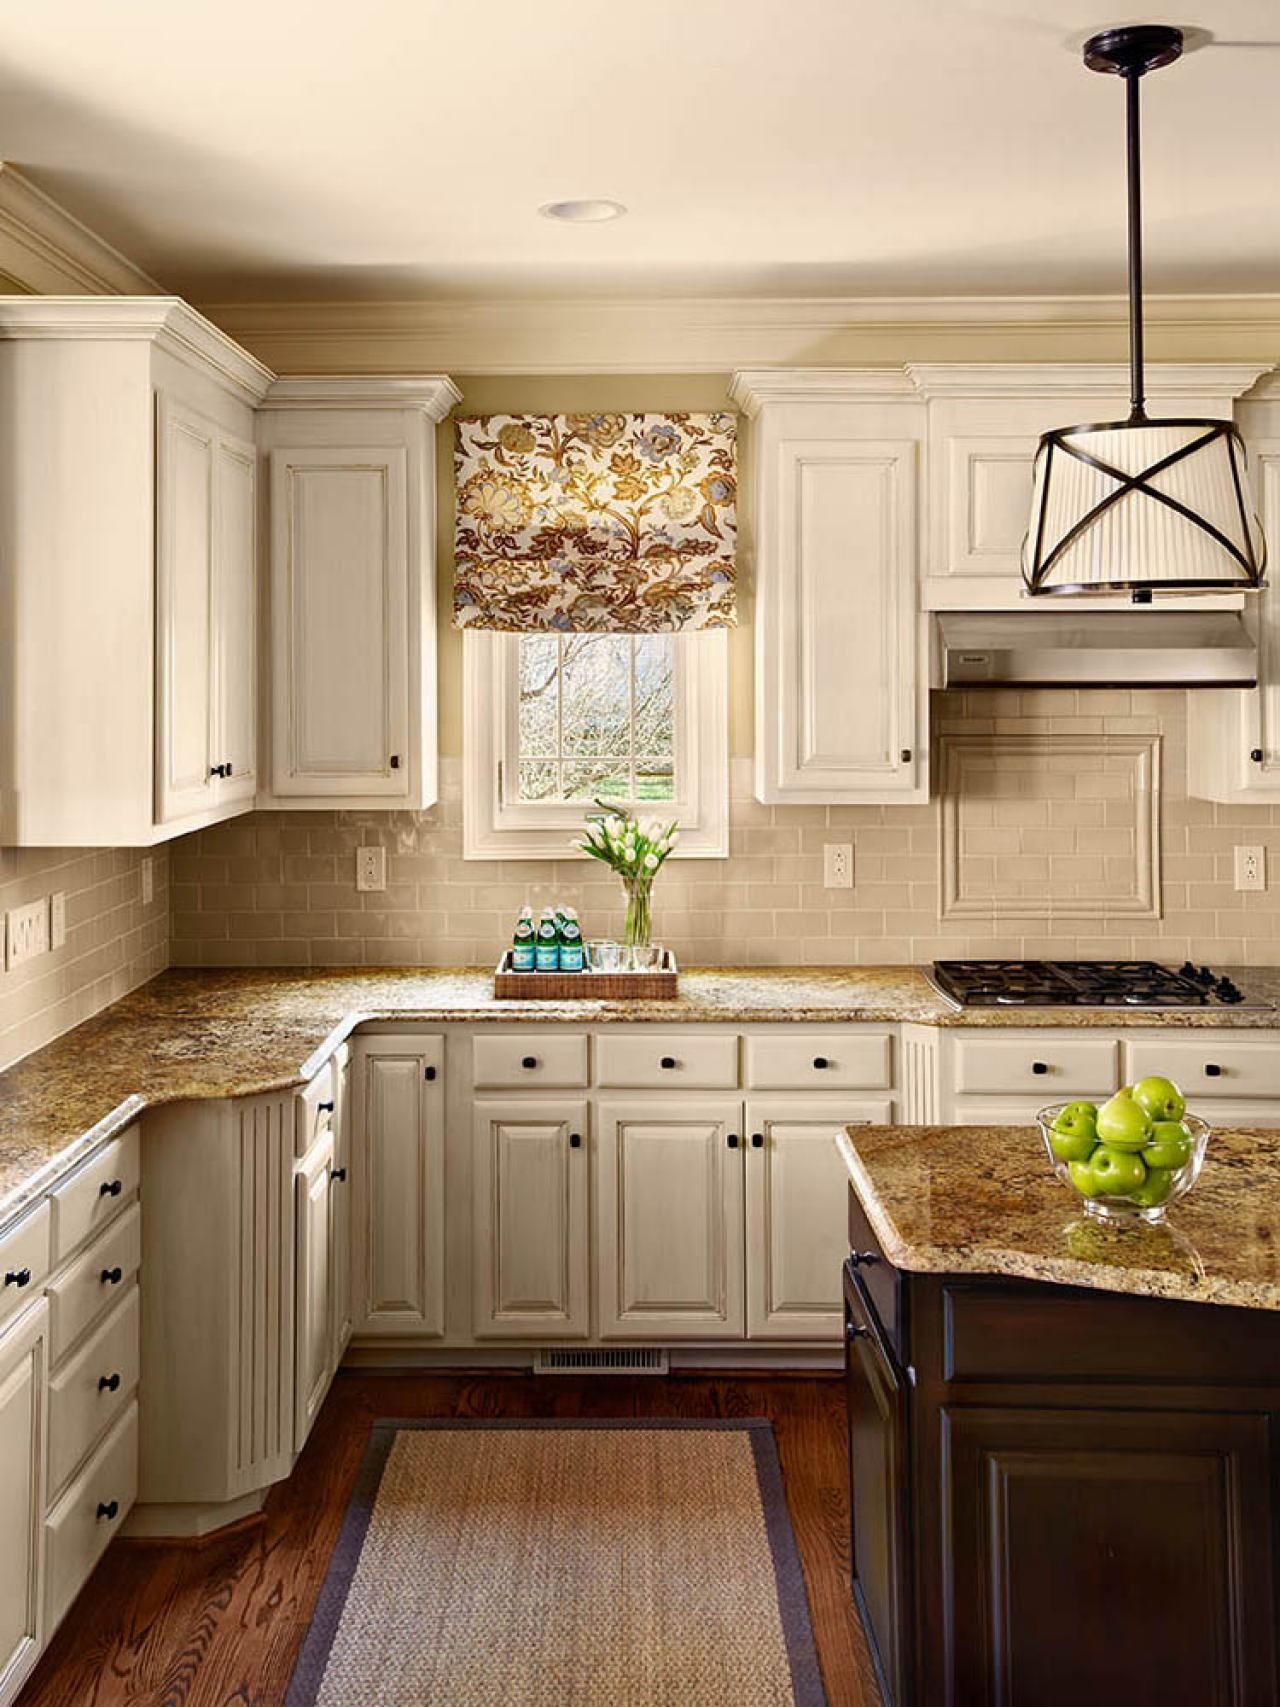 Replace Cabinet Doors Awesome Replacing Kitchen Cabinet Doors & Ideas From